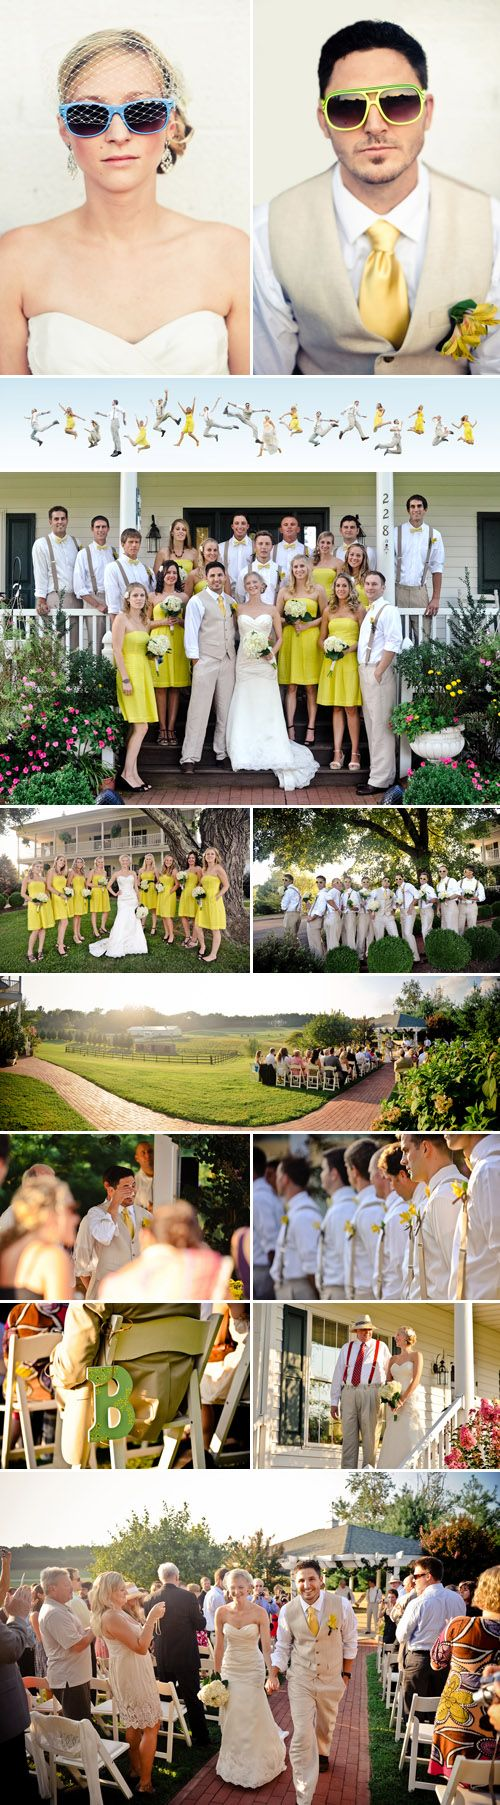 casual outdoor Virginia real wedding at the Rock Hill Plantation House, photos by Rebekah J. Murray Photography